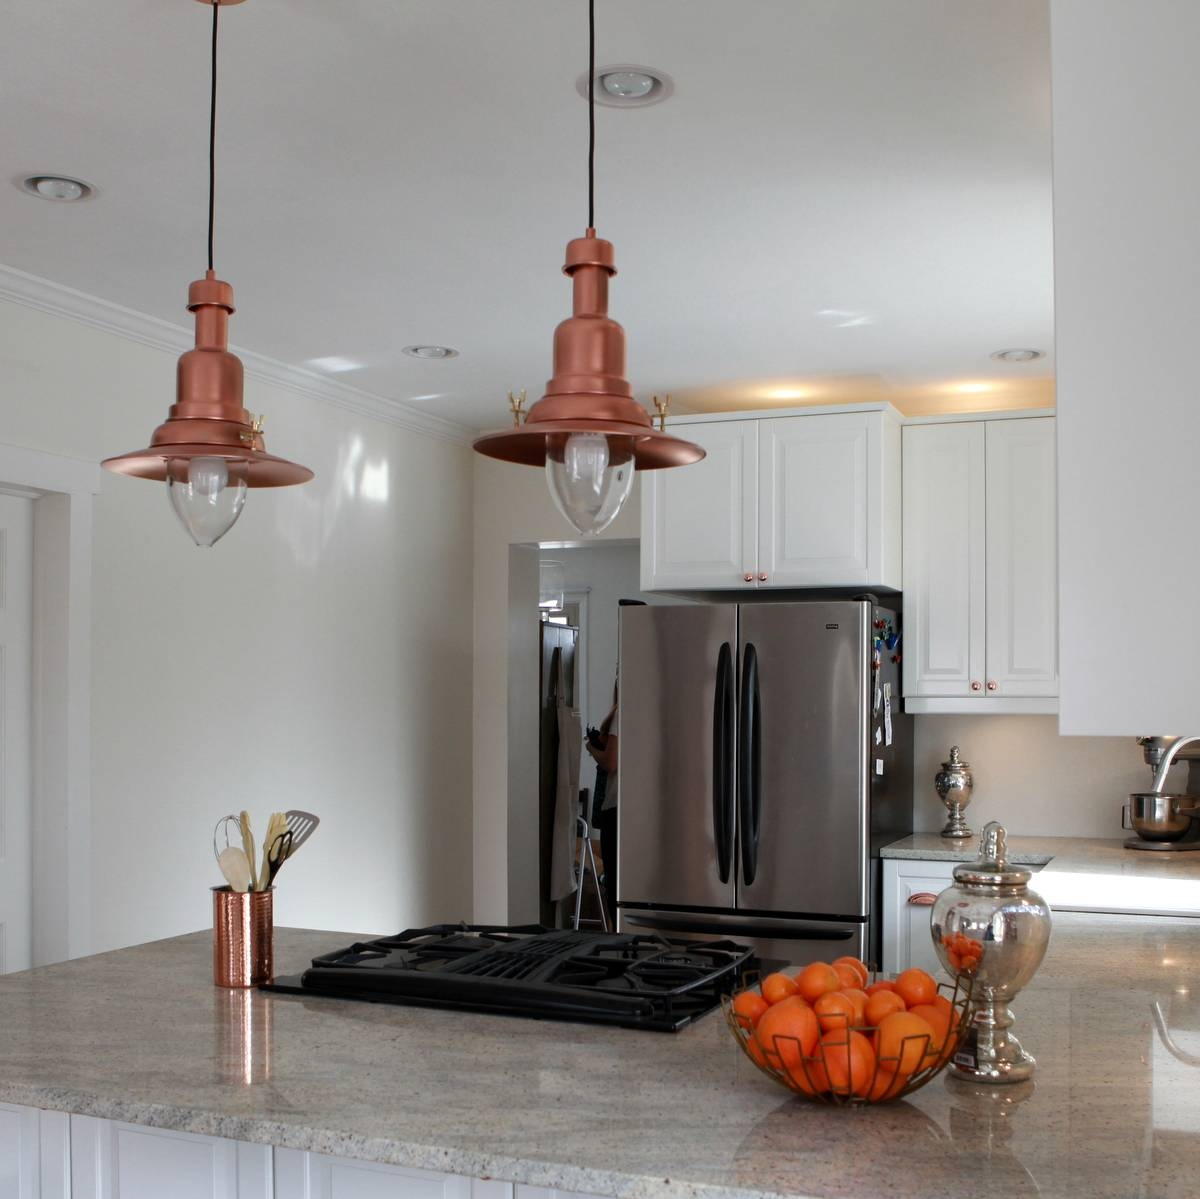 Elegant Barn Pendant Lighting 47 About Remodel Lantern Pendant throughout Farmhouse Pendant Lighting Fixtures (Image 10 of 15)